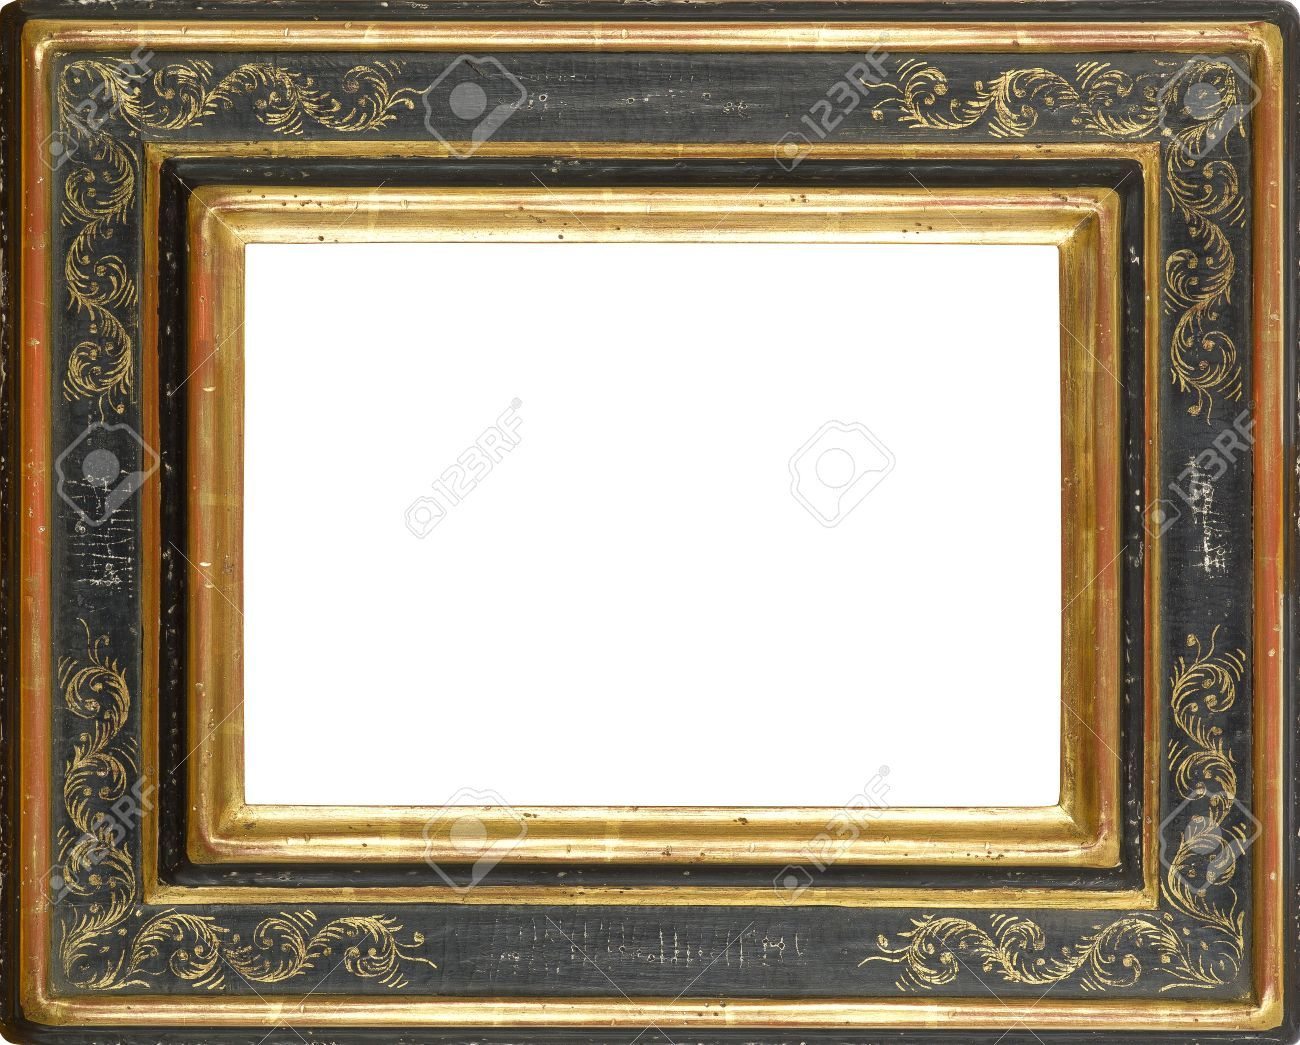 12603795 gold and black art picture frame stock photo framesg 12603795 gold and black art picture frame stock jeuxipadfo Image collections